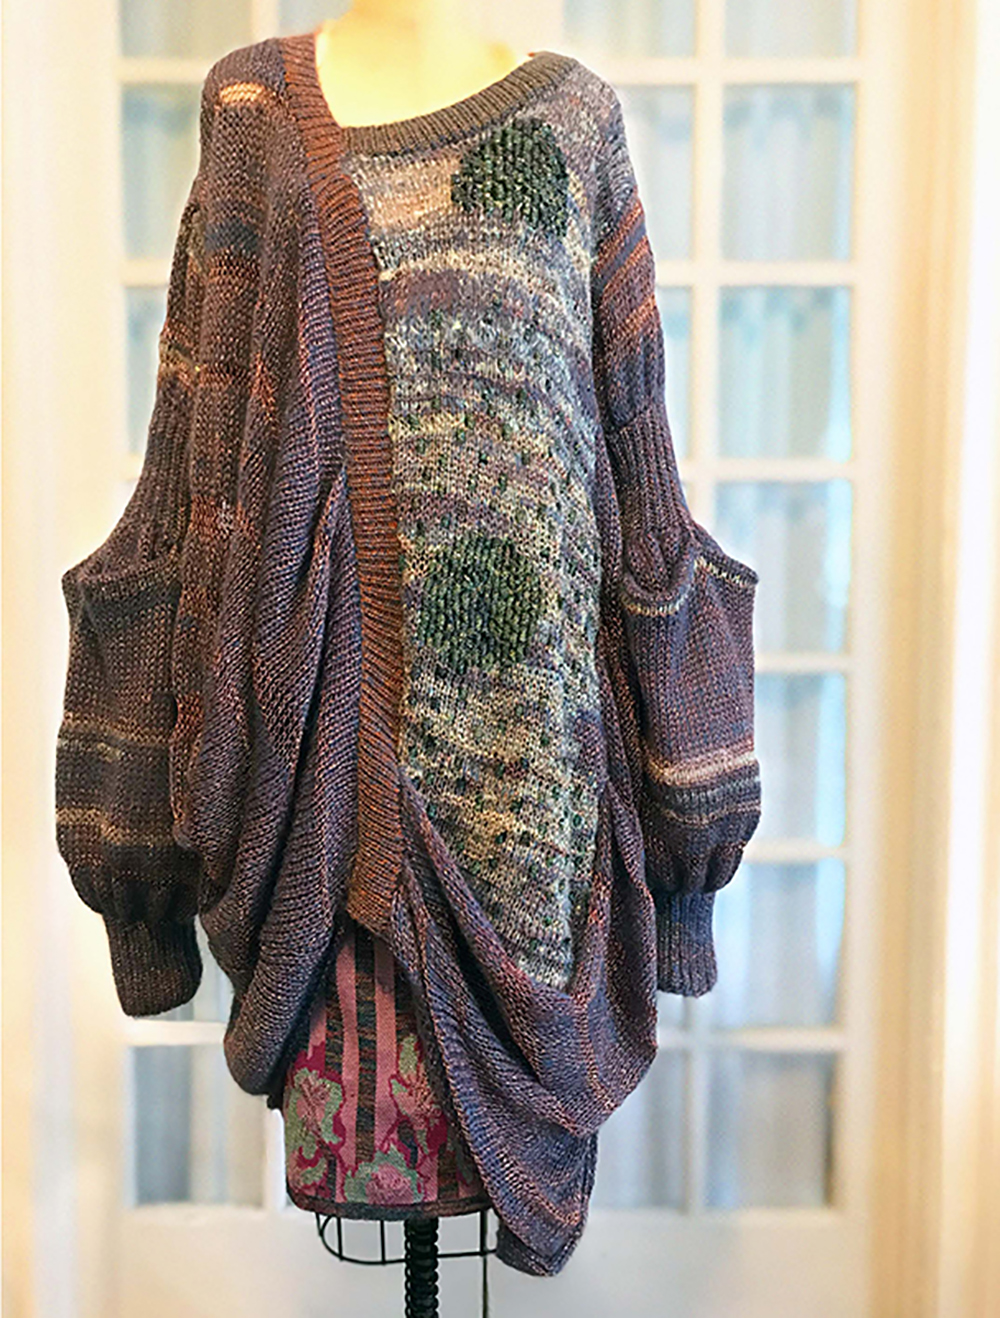 Iridescent pinks hand loomed side cowl and intarsia tunic over multicolor floral jacquard skirt.